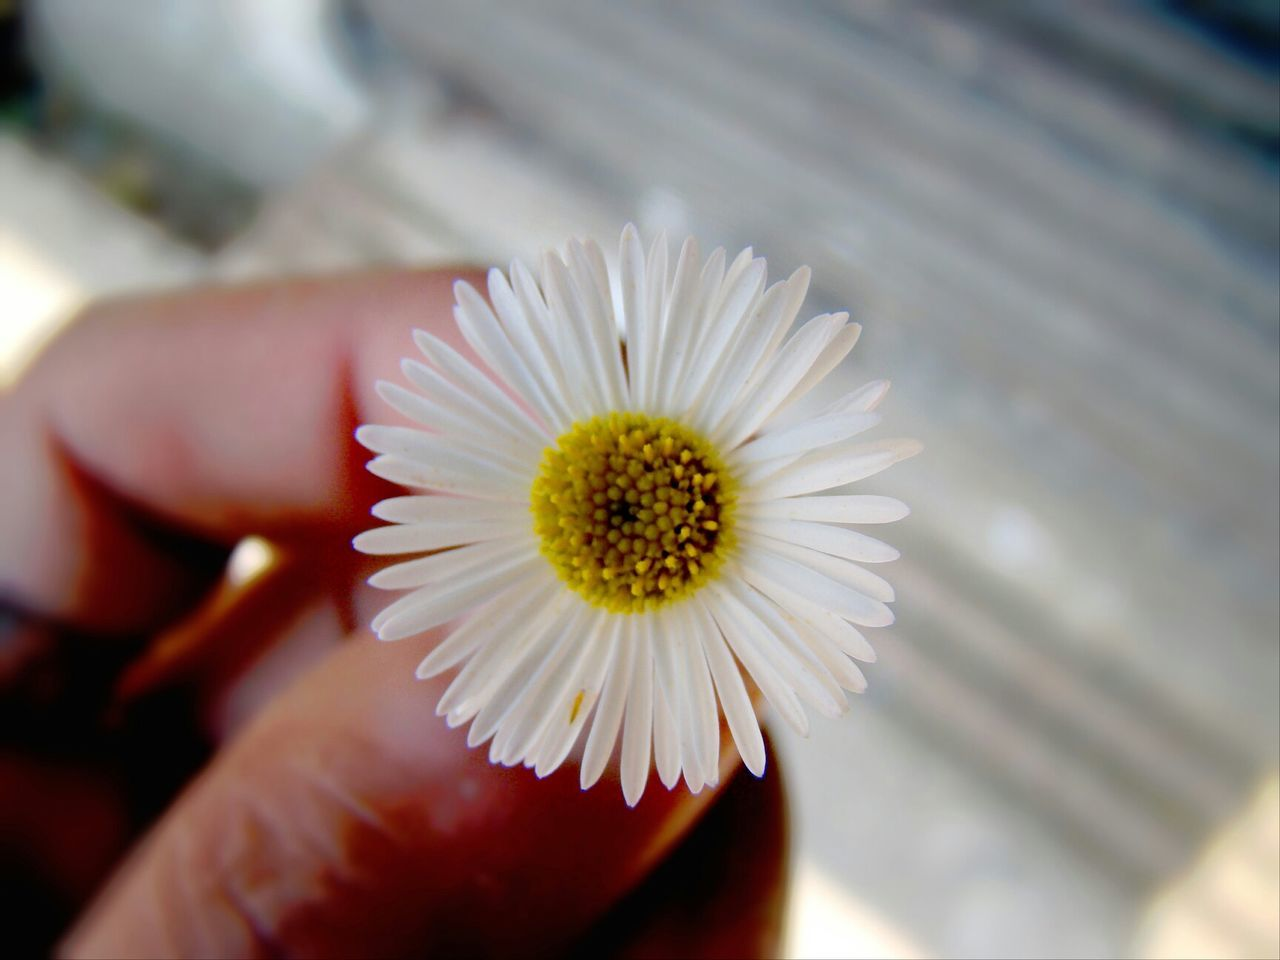 Deceptively Simple Imrankhaan Nature Imrankhaan Flower